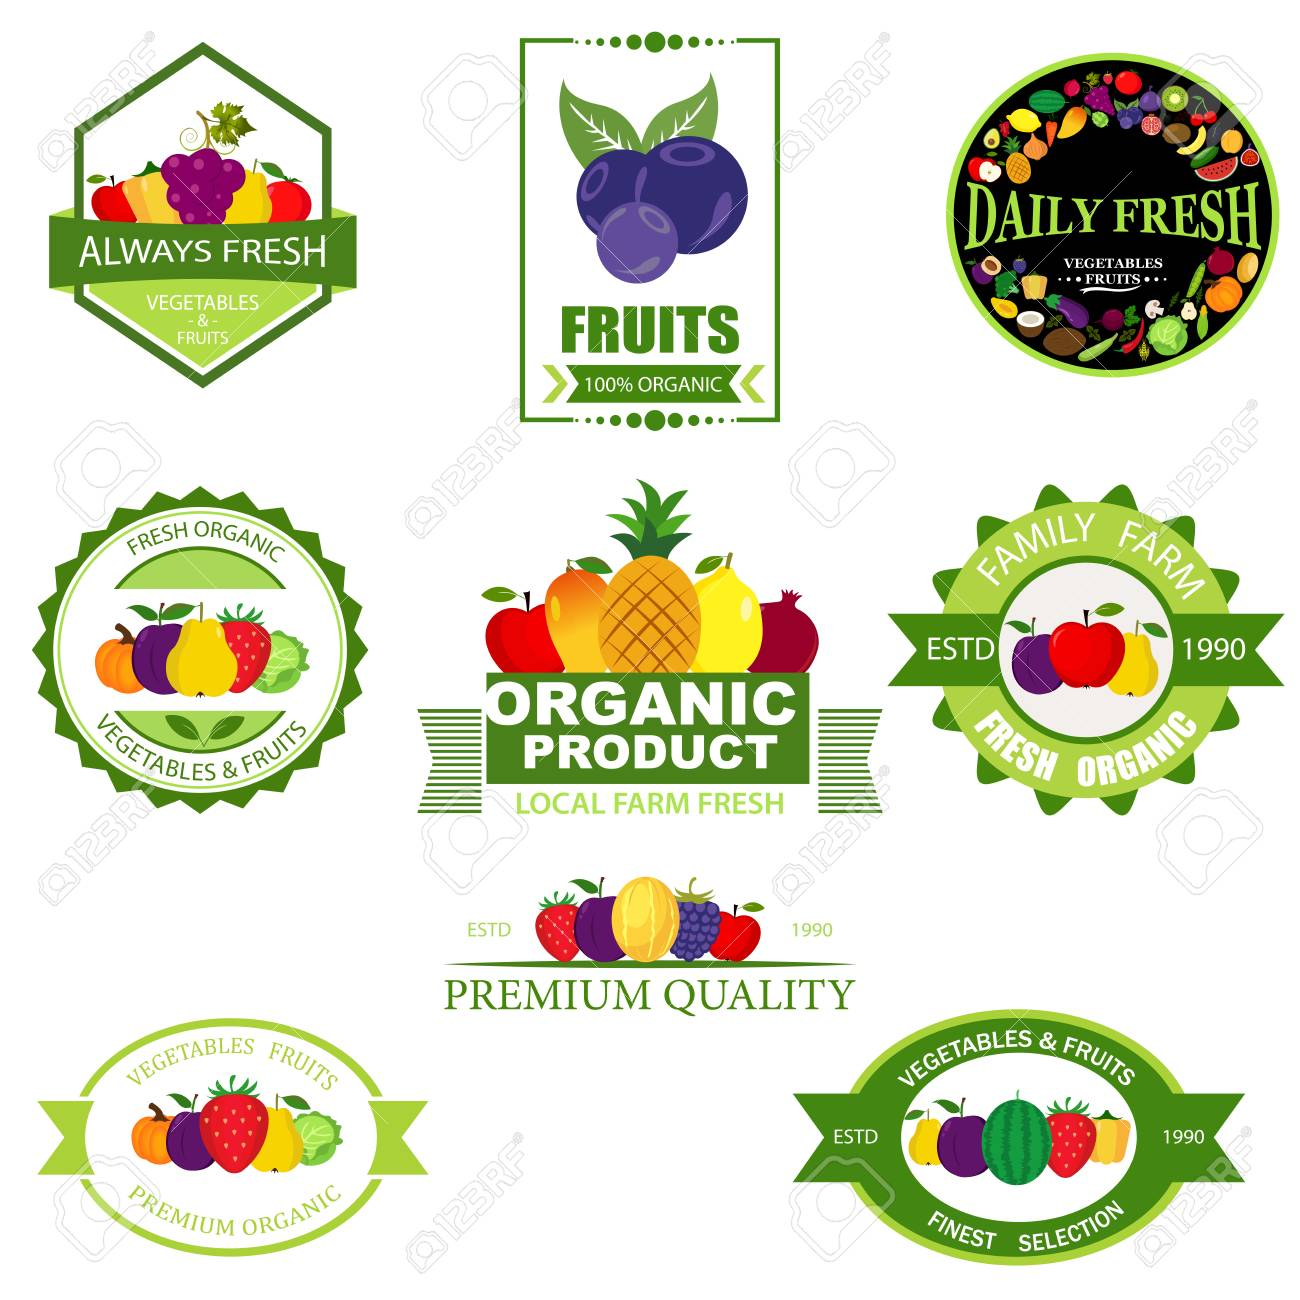 Set Of Fruit And Vegetables Logo Royalty Free Cliparts Vectors And Stock Illustration Image 102224906